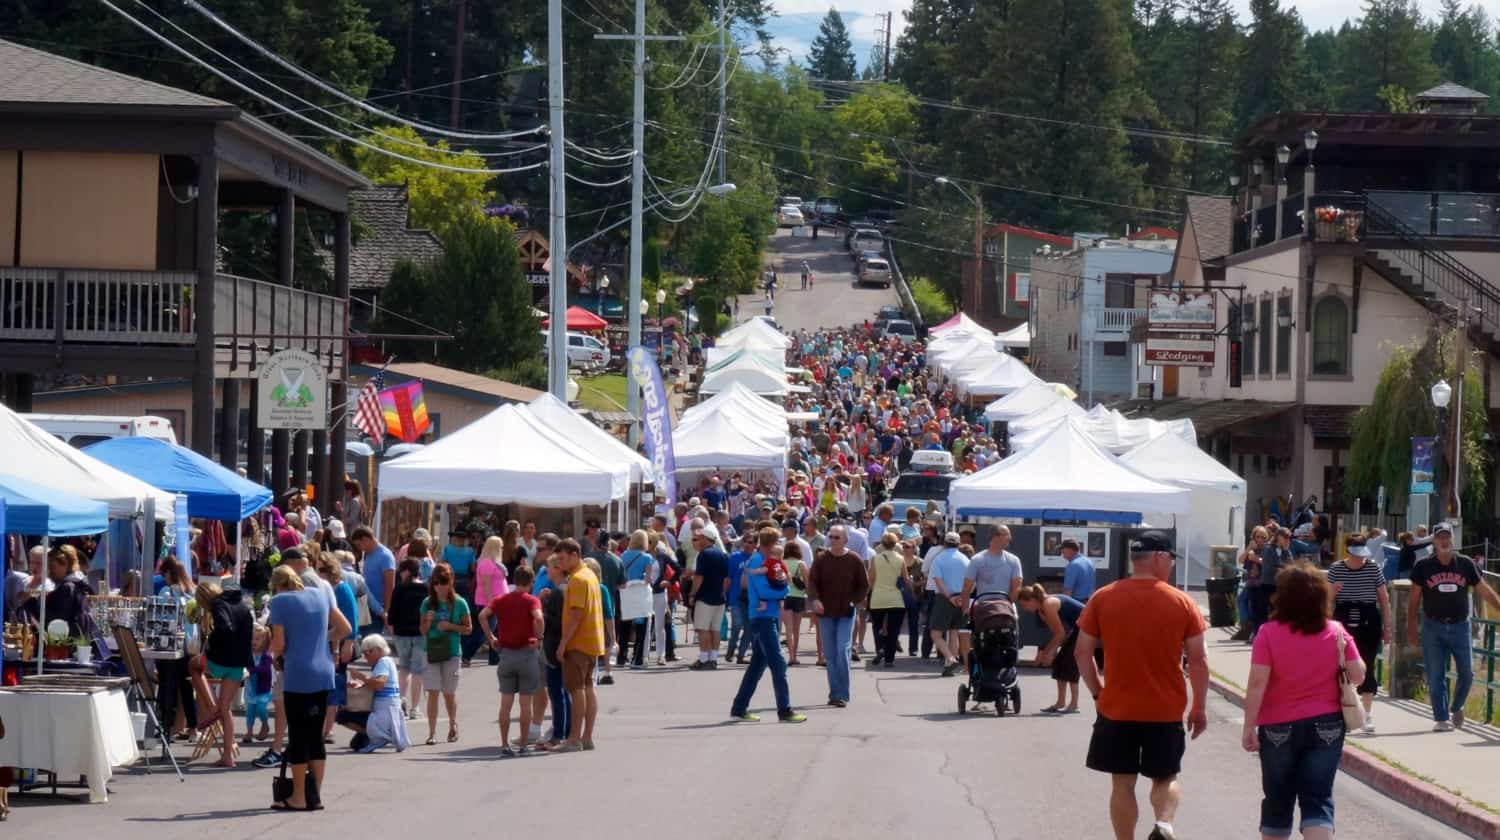 Art Festival in Bigfork, MT